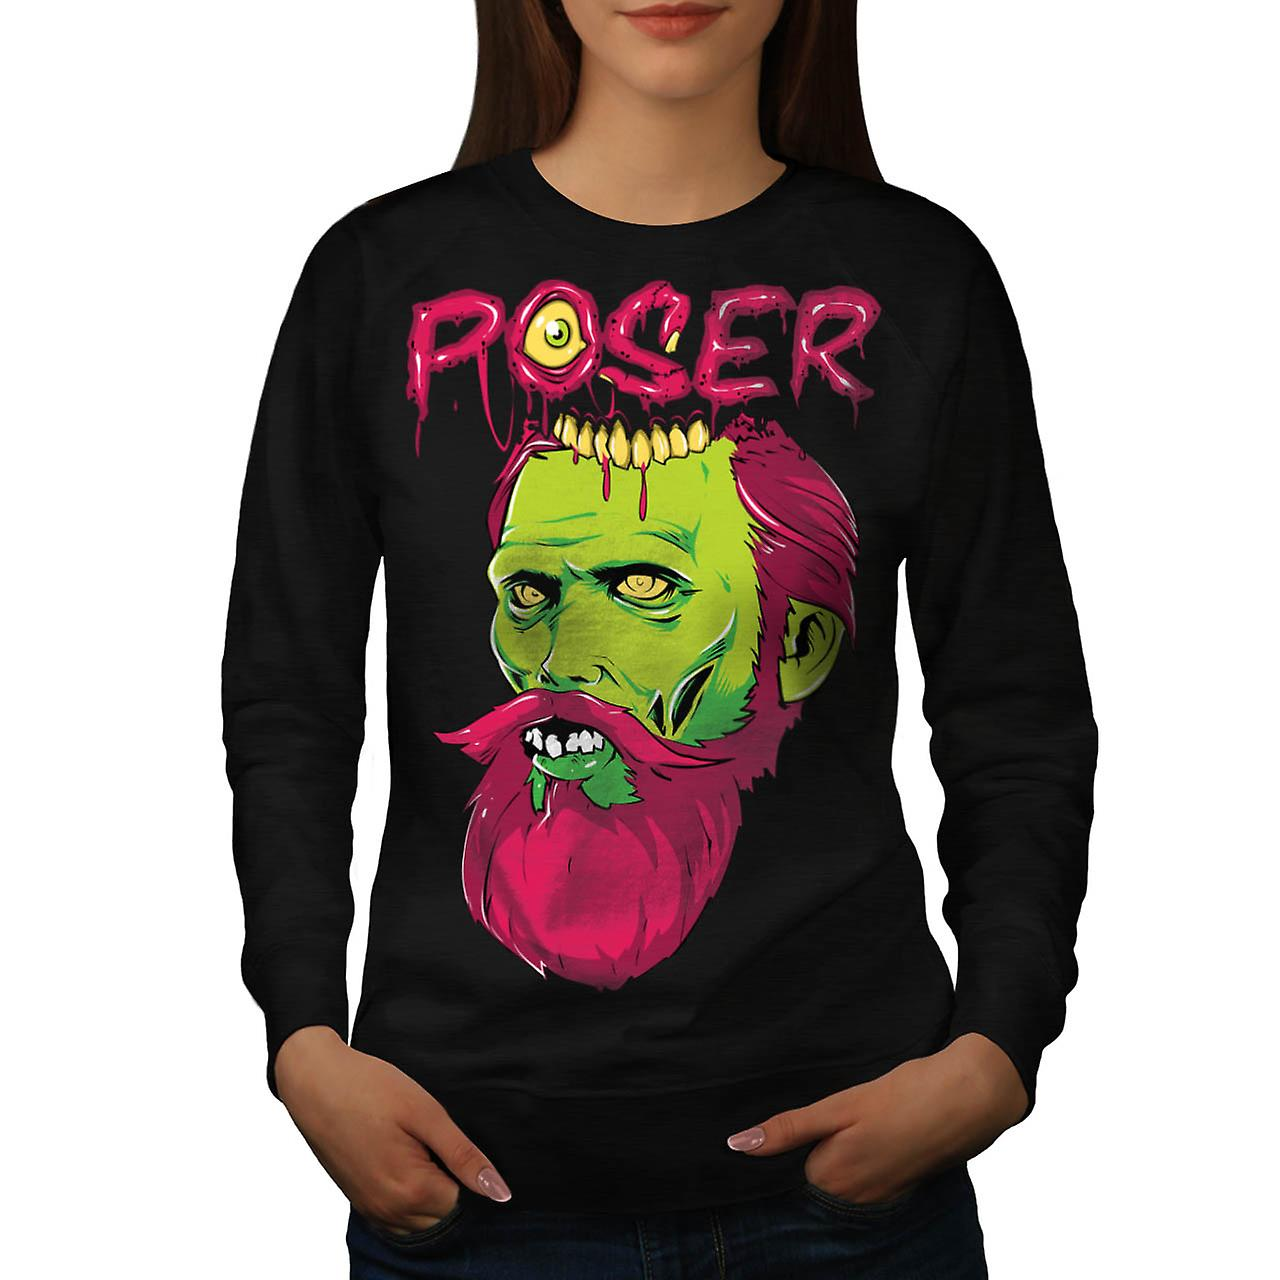 Poser Zombie Undead Dead Beard Women Black Sweatshirt | Wellcoda